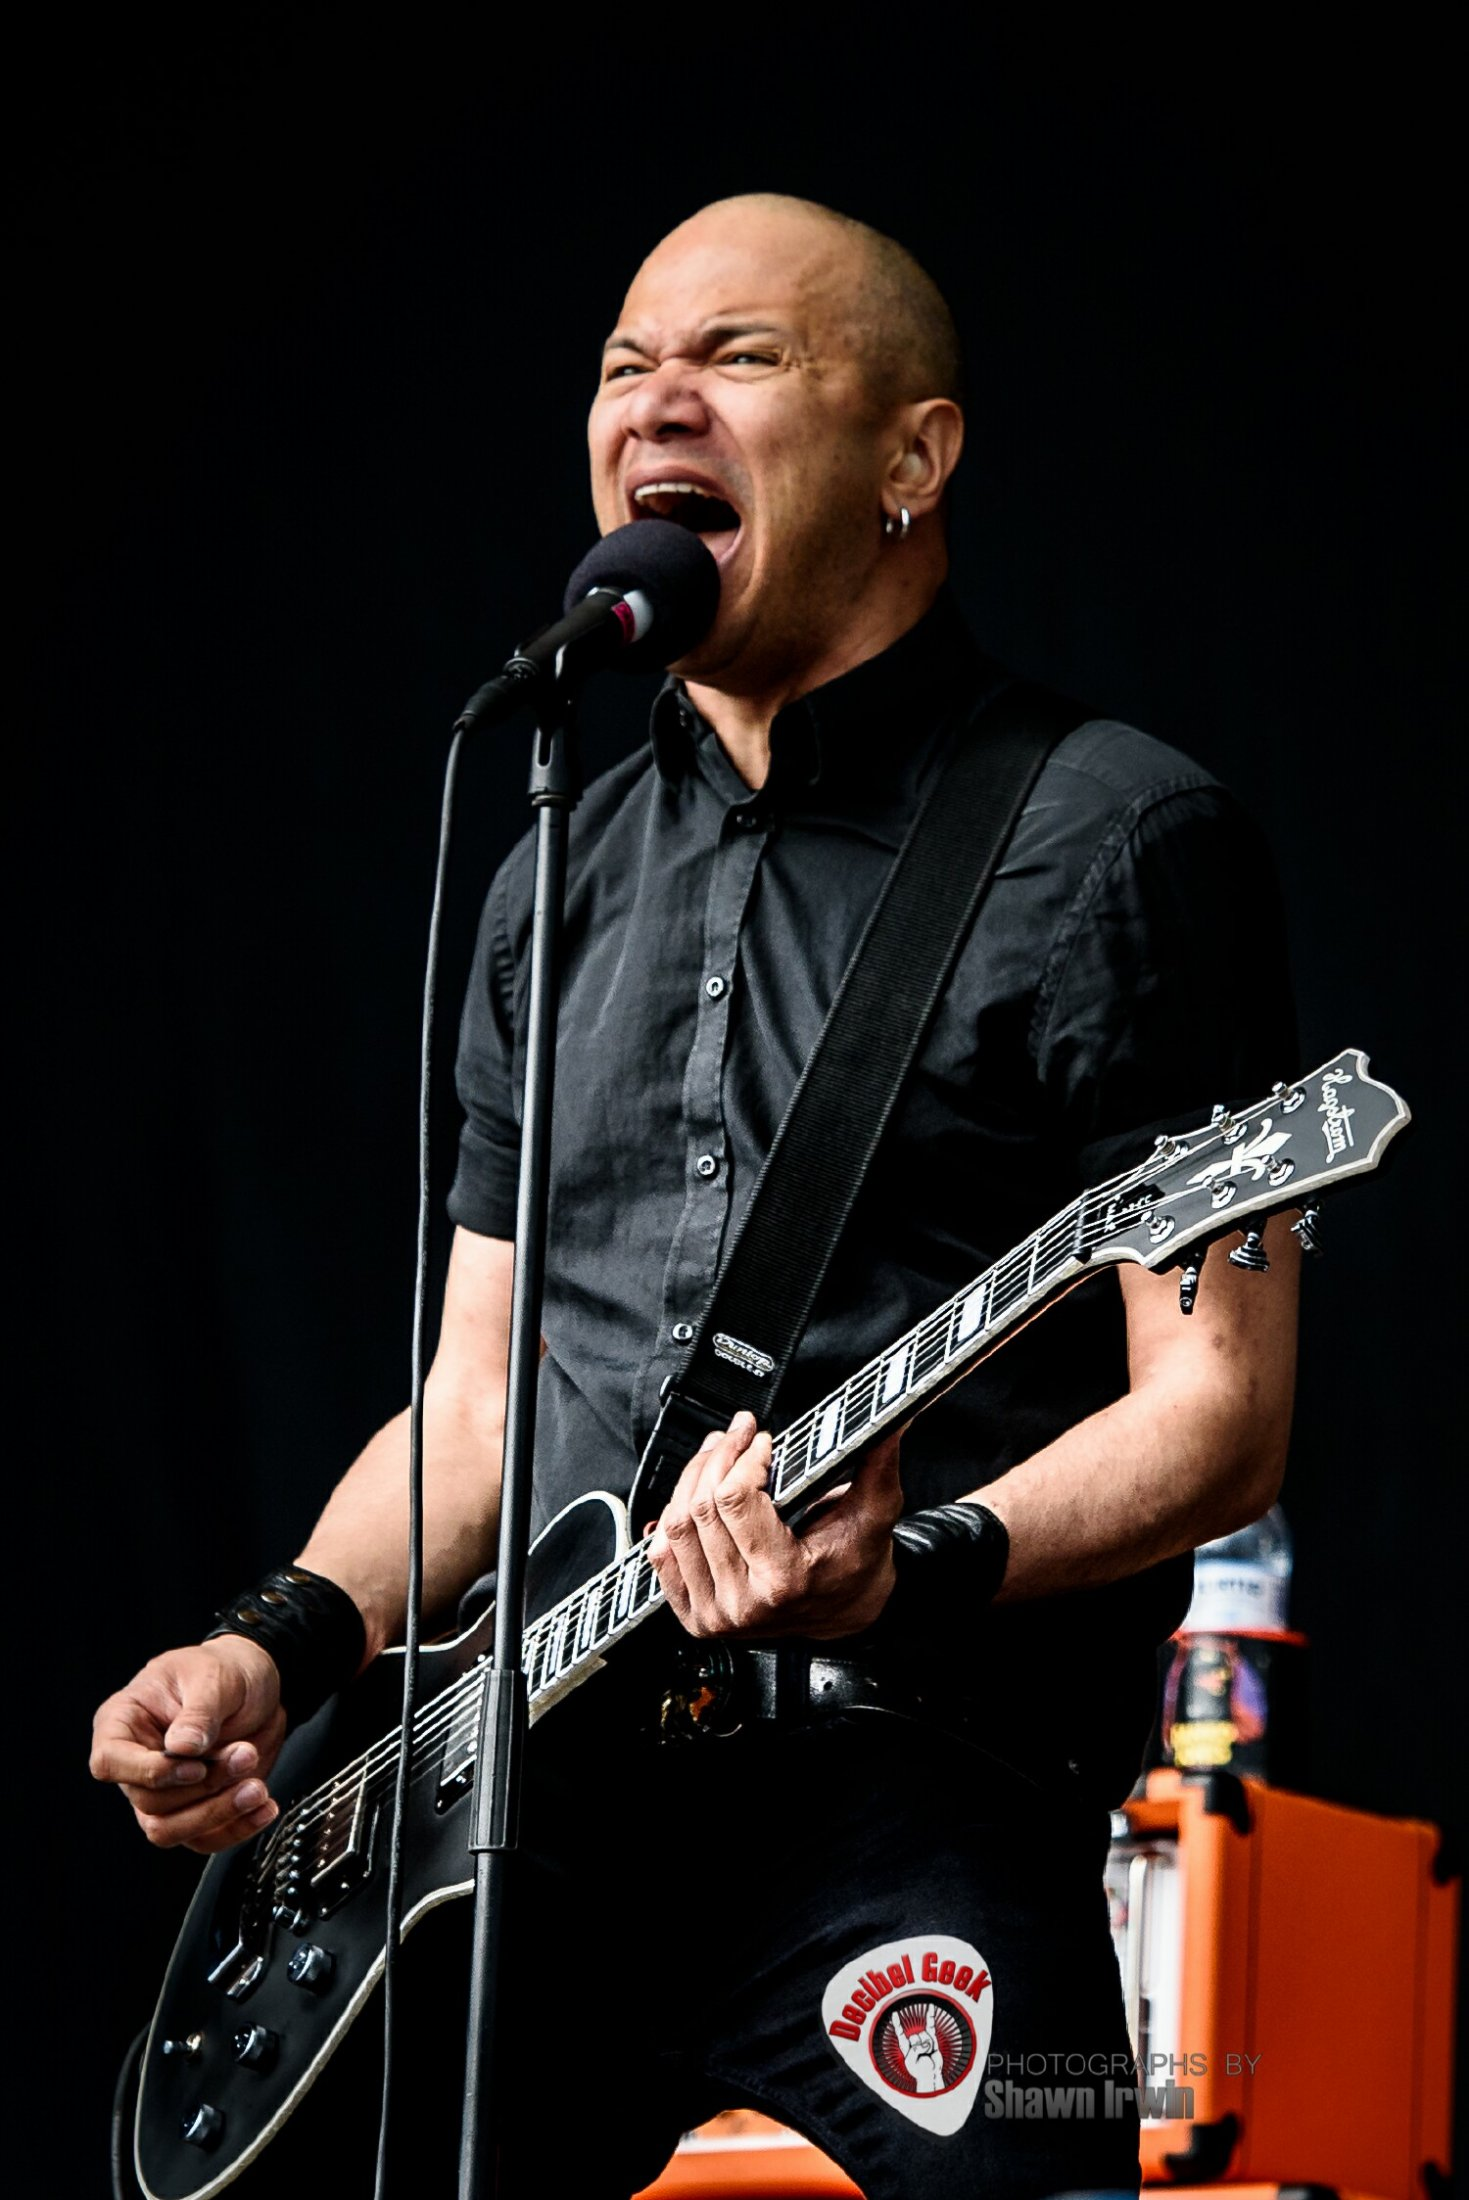 Danko Jones #15-SRF 2019-Shawn Irwin